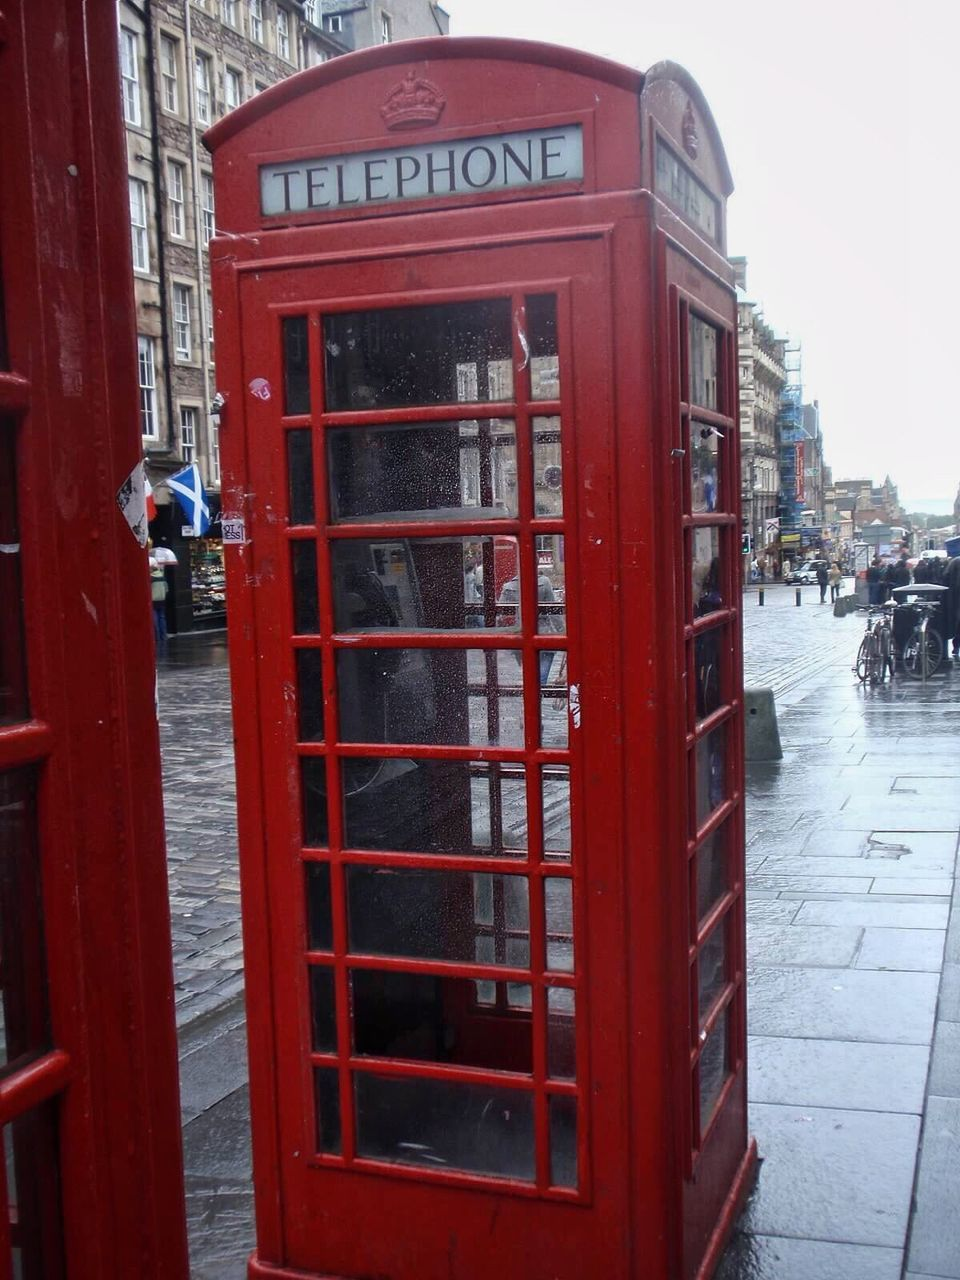 telephone booth, pay phone, communication, red, connection, telephone, day, built structure, street, outdoors, architecture, convenience, technology, building exterior, city, real people